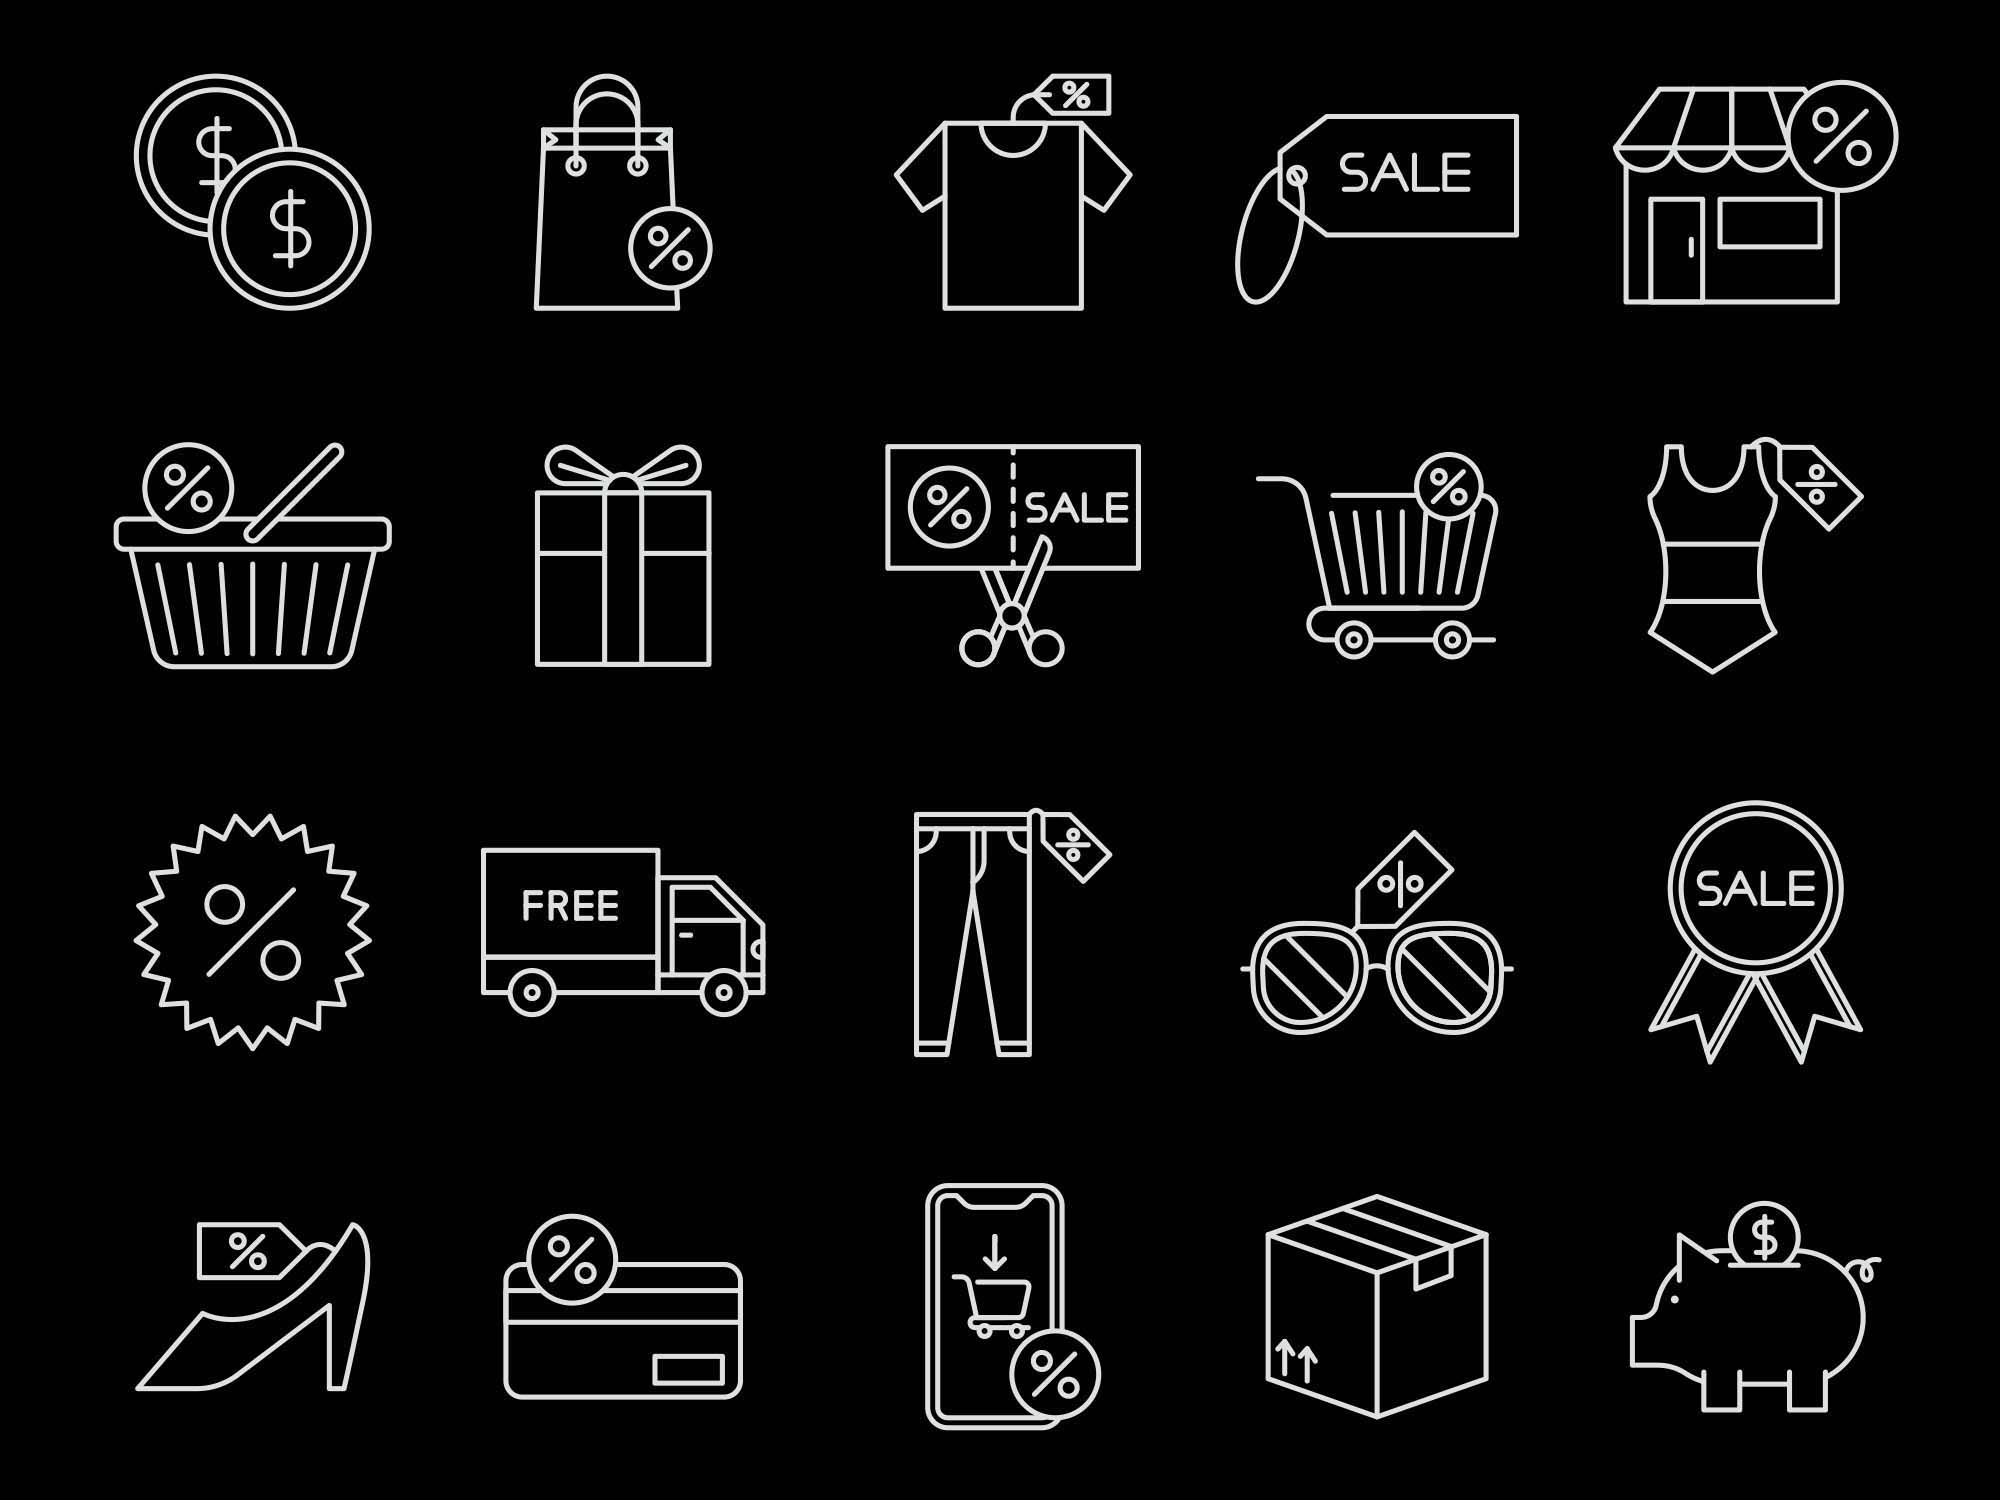 Sale Vector Icons 2